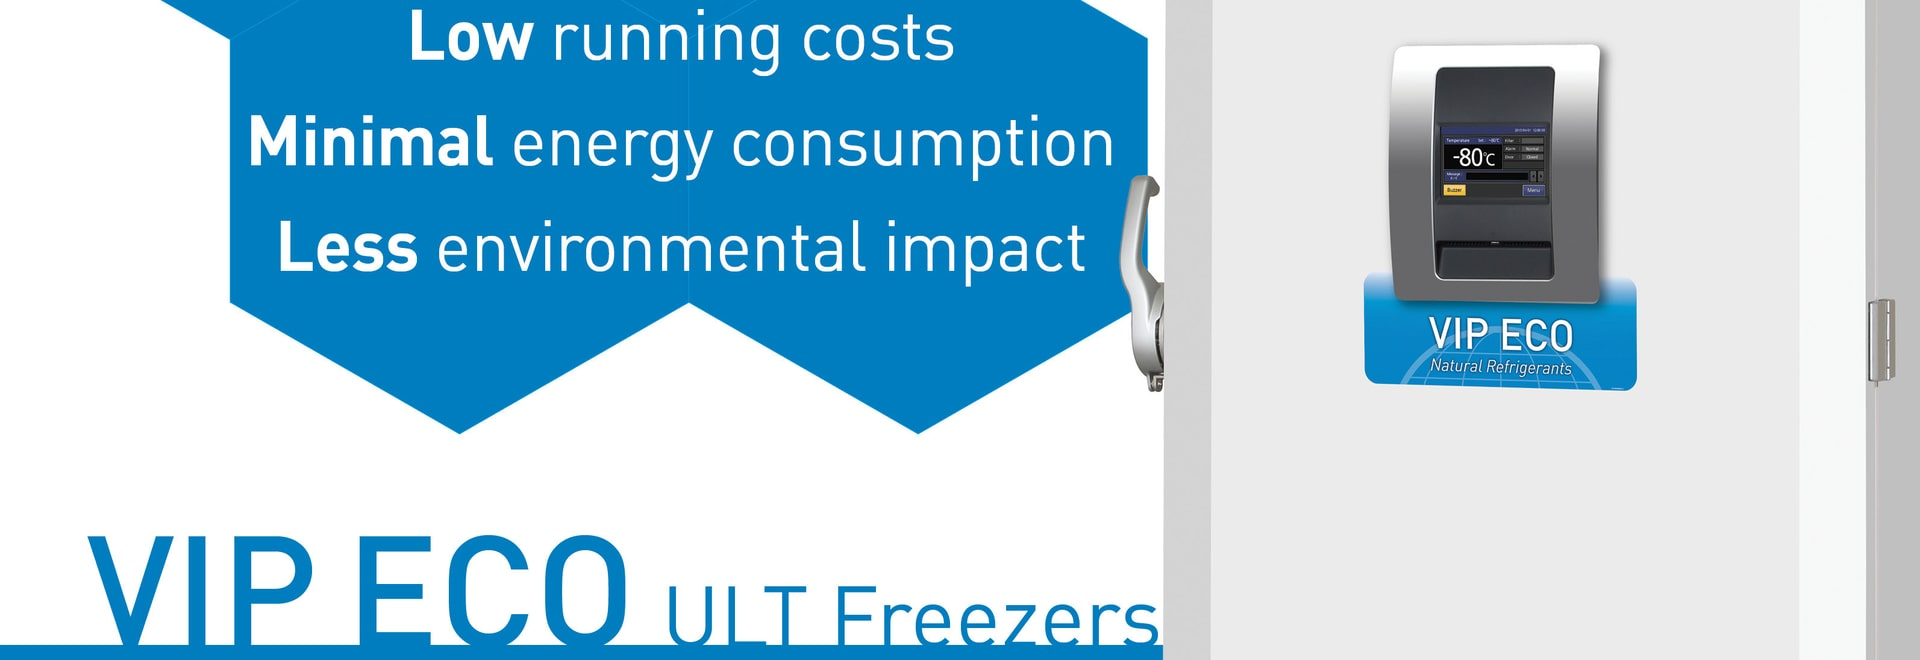 I love: low running costs, minimal energy consumption, less environmental impact